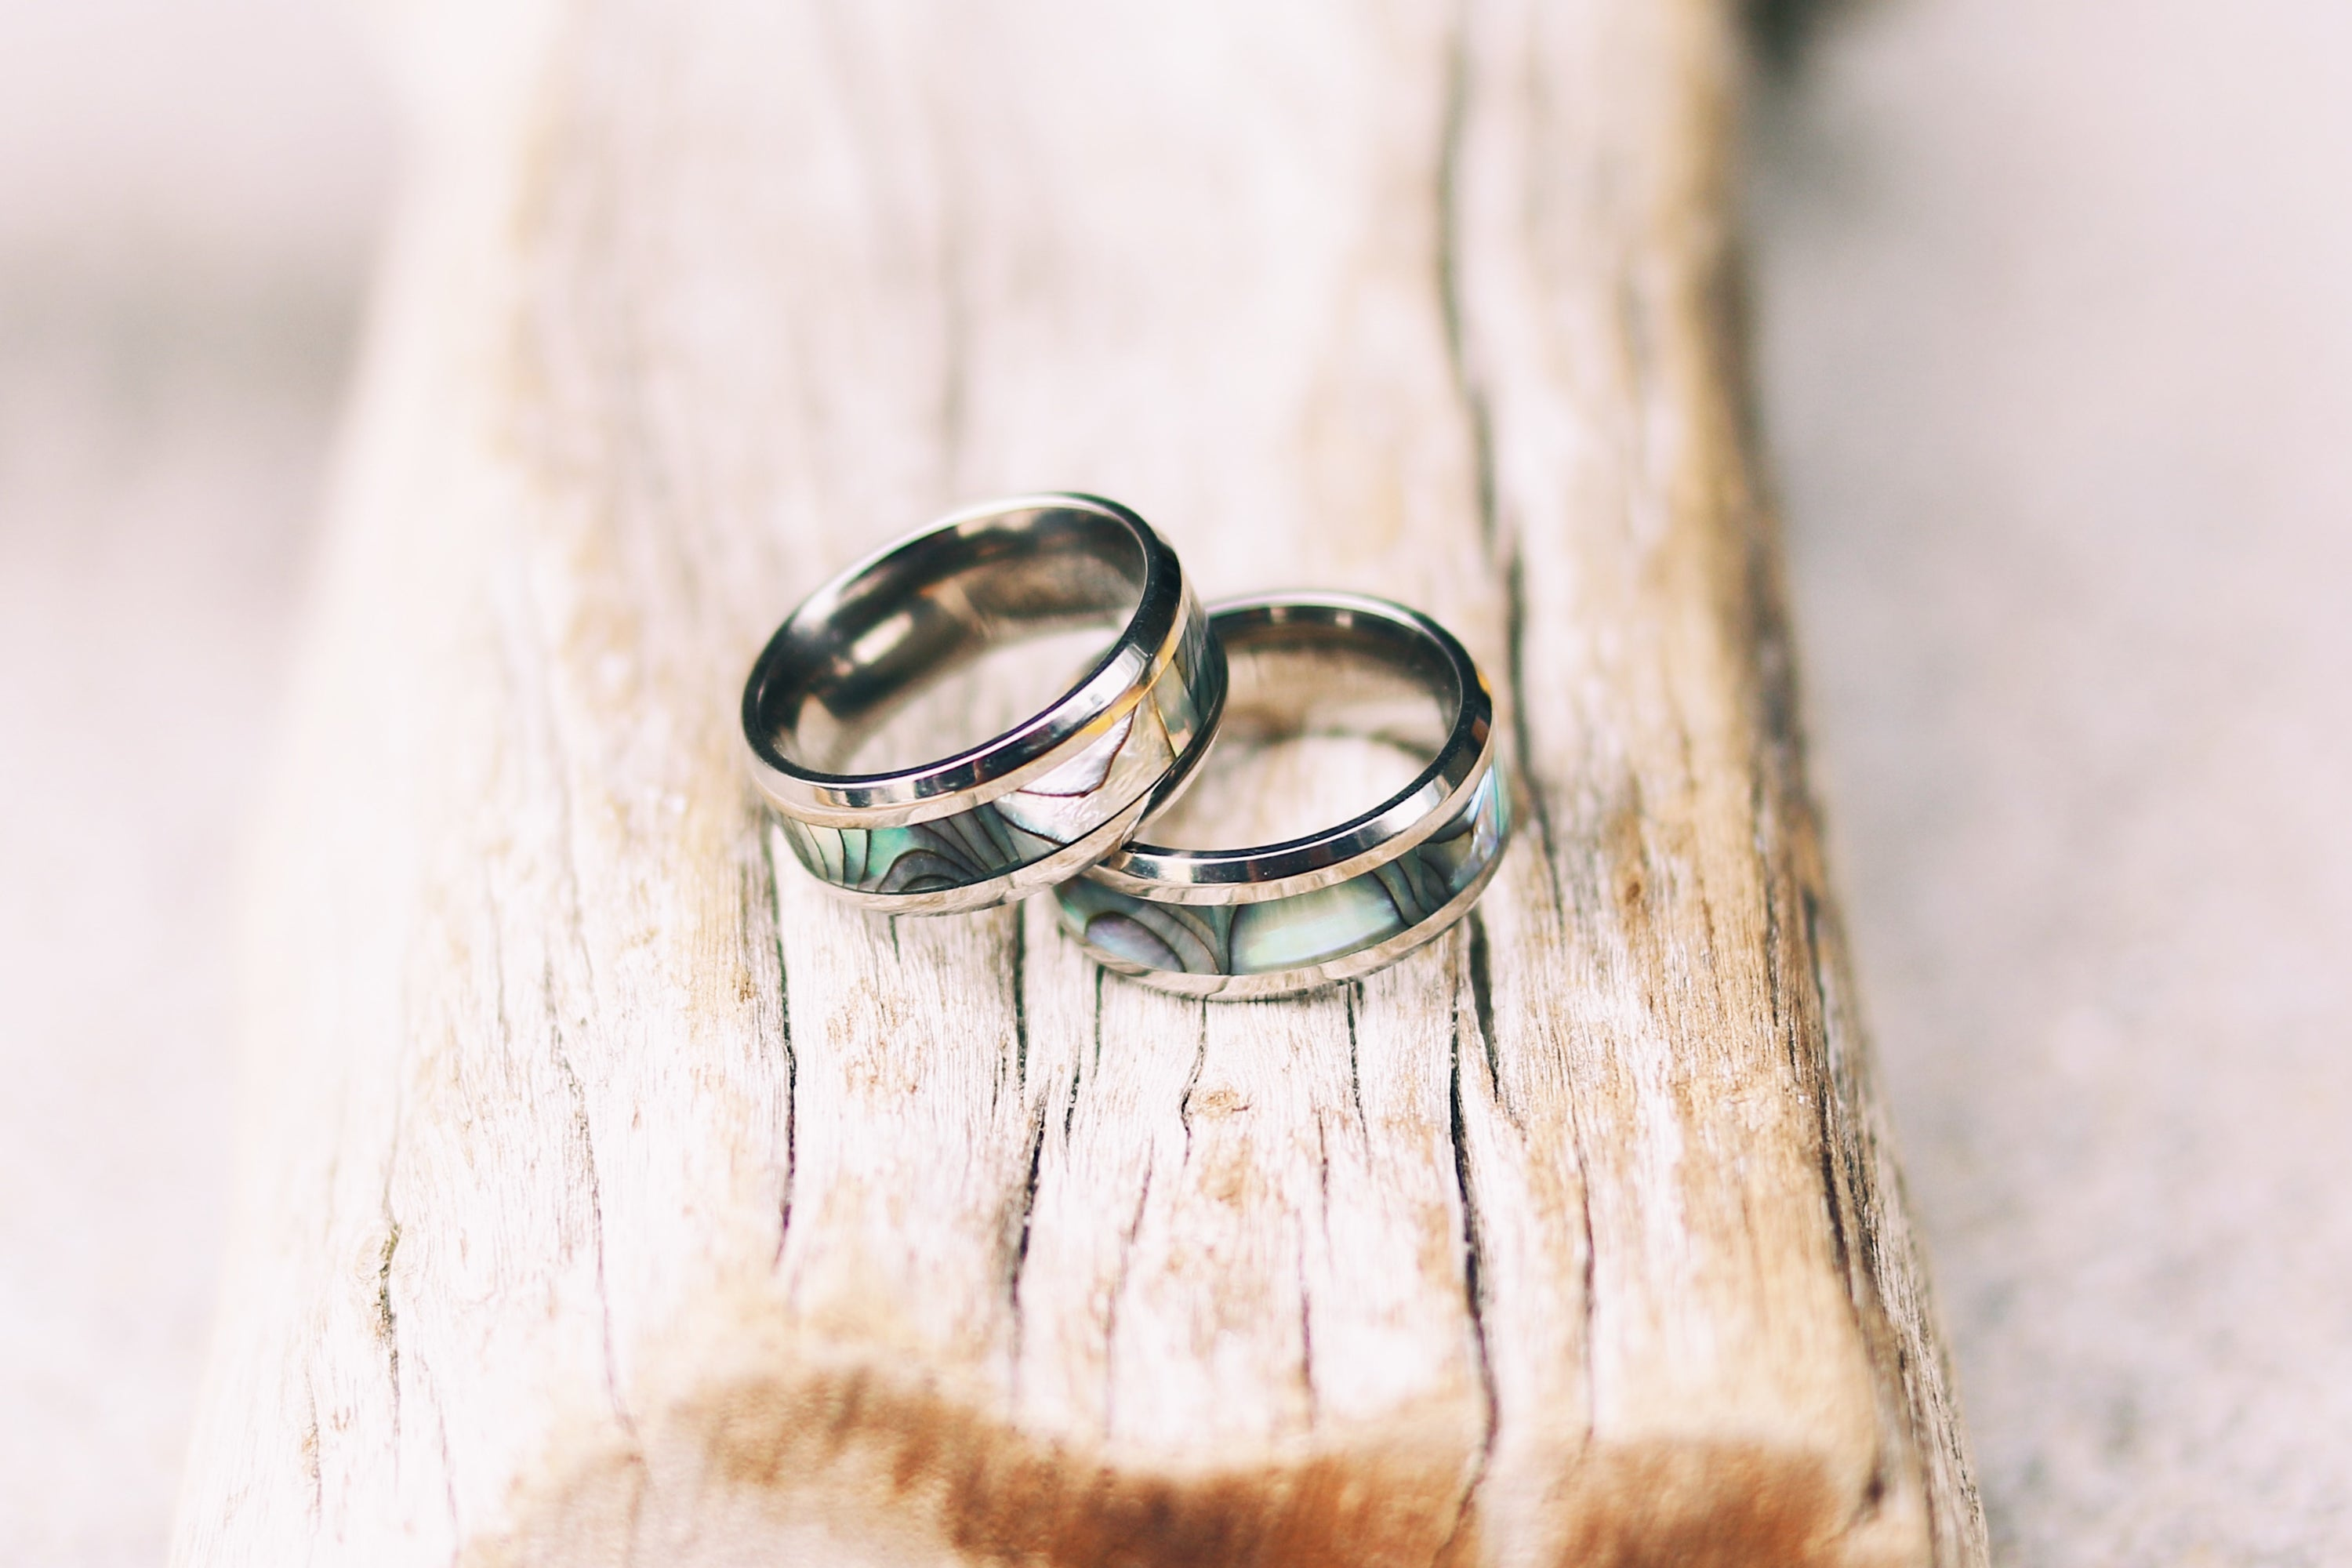 inspired sex ring popsugar love rings big inspiration ocean engagement wedding